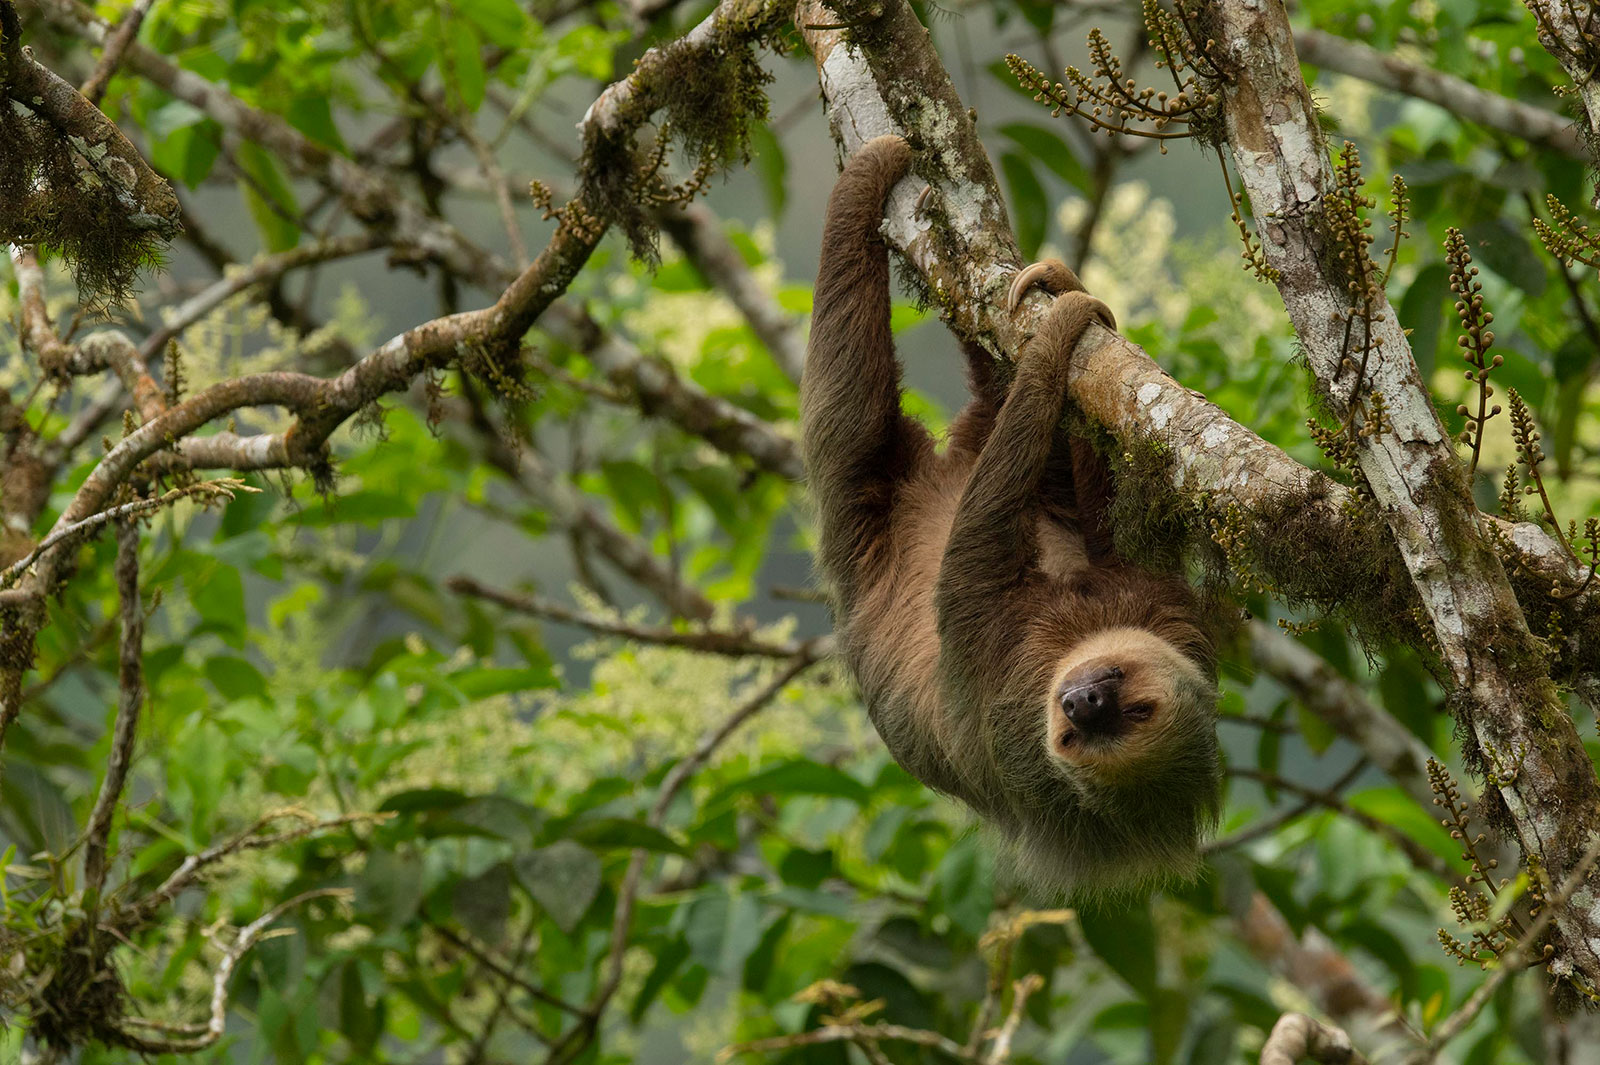 A sloth sleeps in the forest